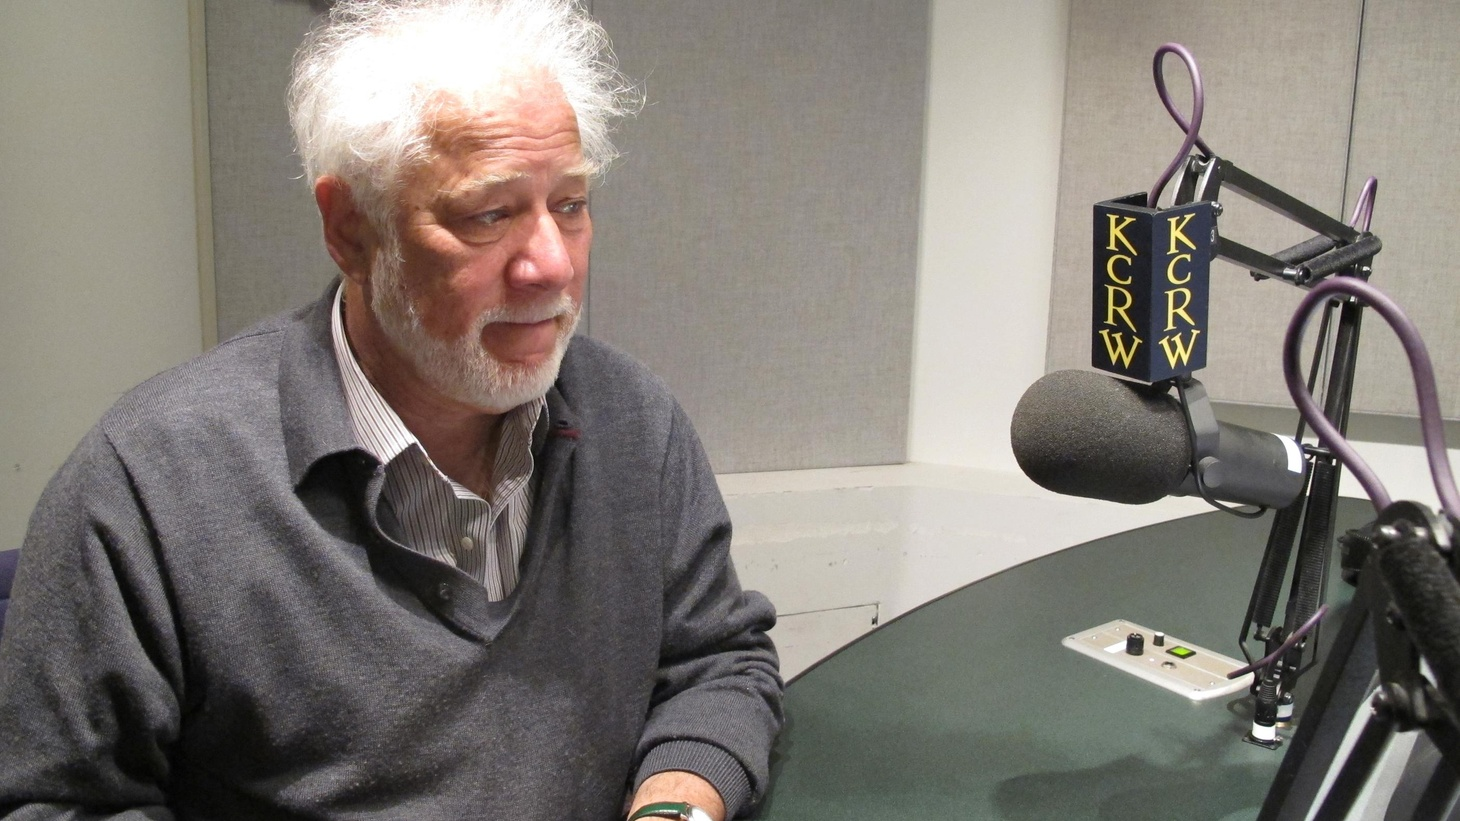 Ondaatje discusses his turn from concealment to revelation and reflects on the magic of youth.